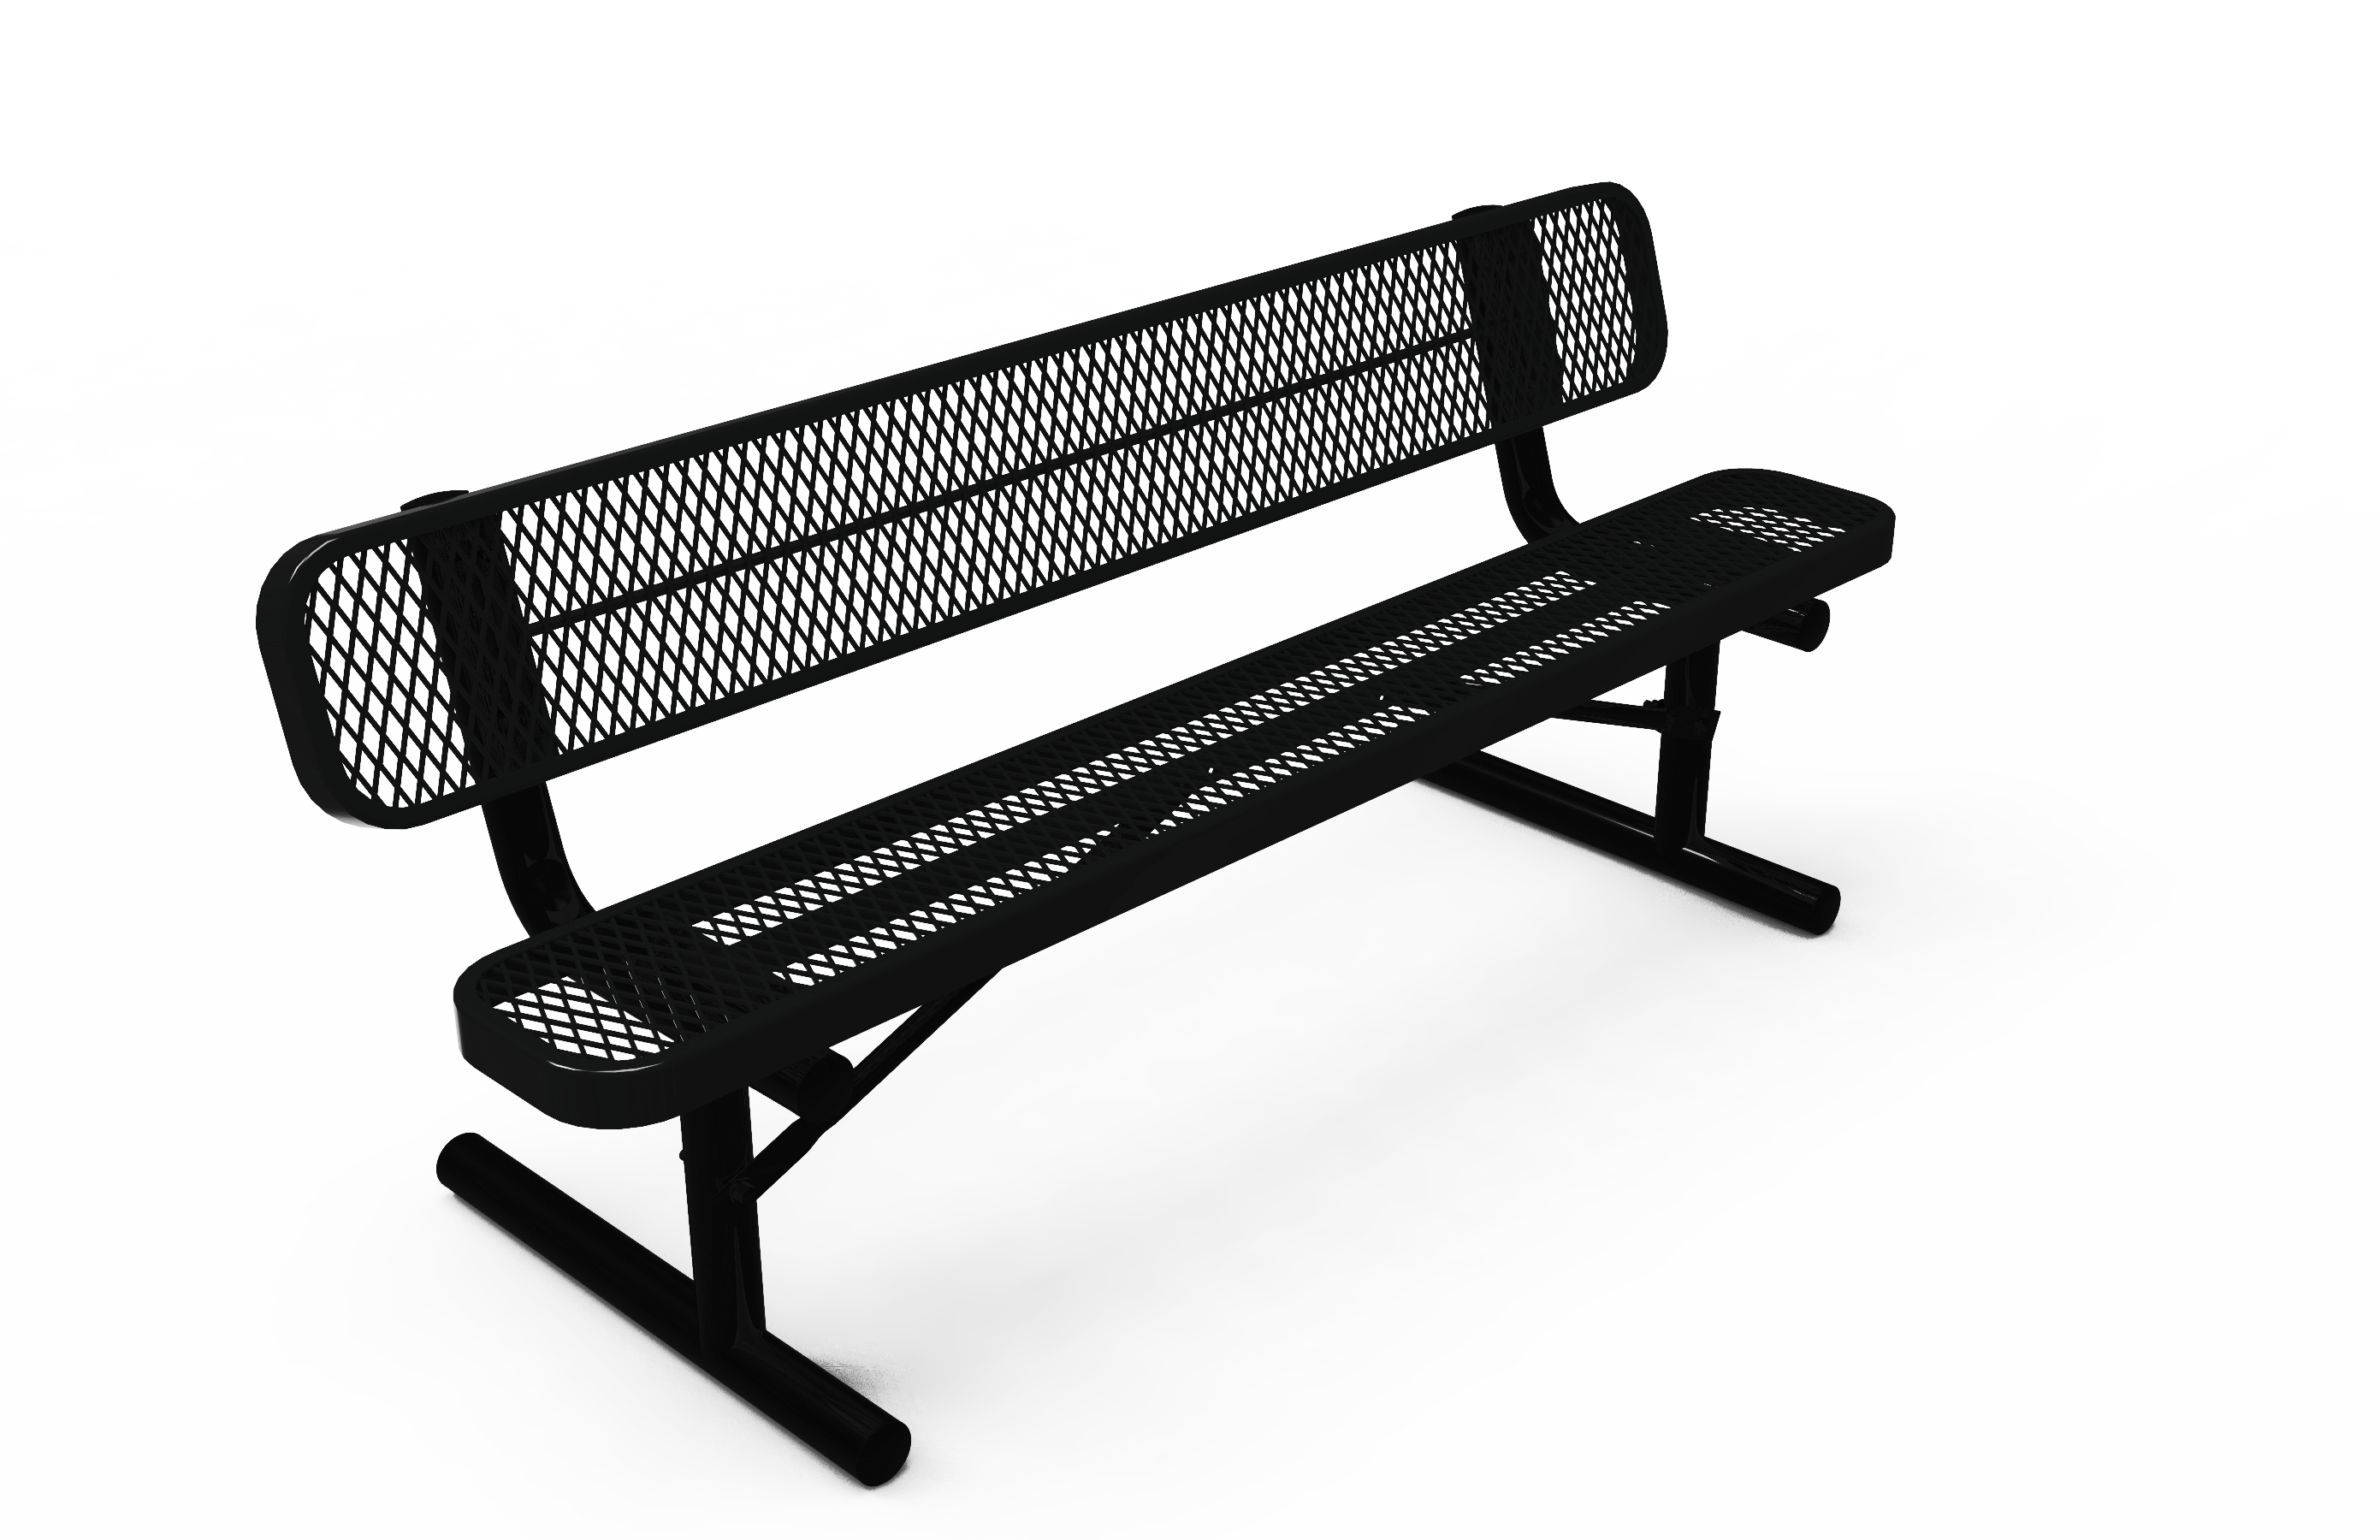 6-Ft. Park Bench with Back